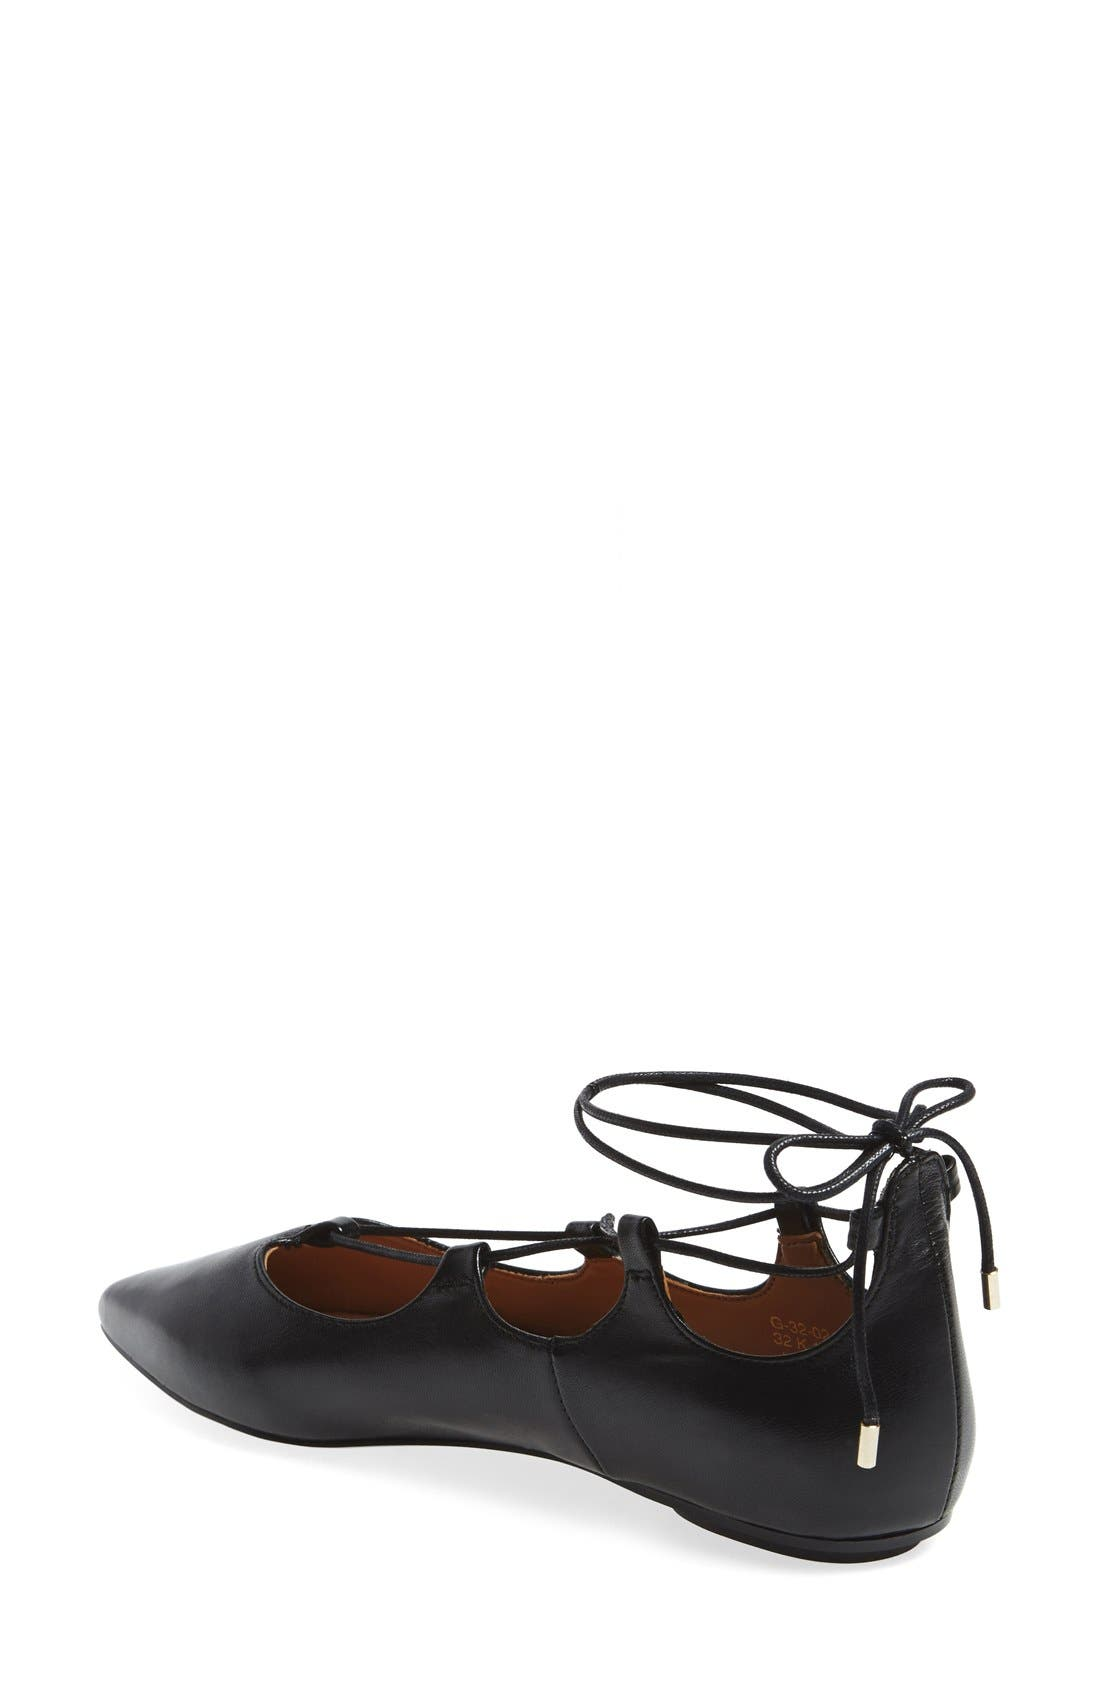 'Leather Kingdom' Pointy Toe Flat,                             Alternate thumbnail 4, color,                             001